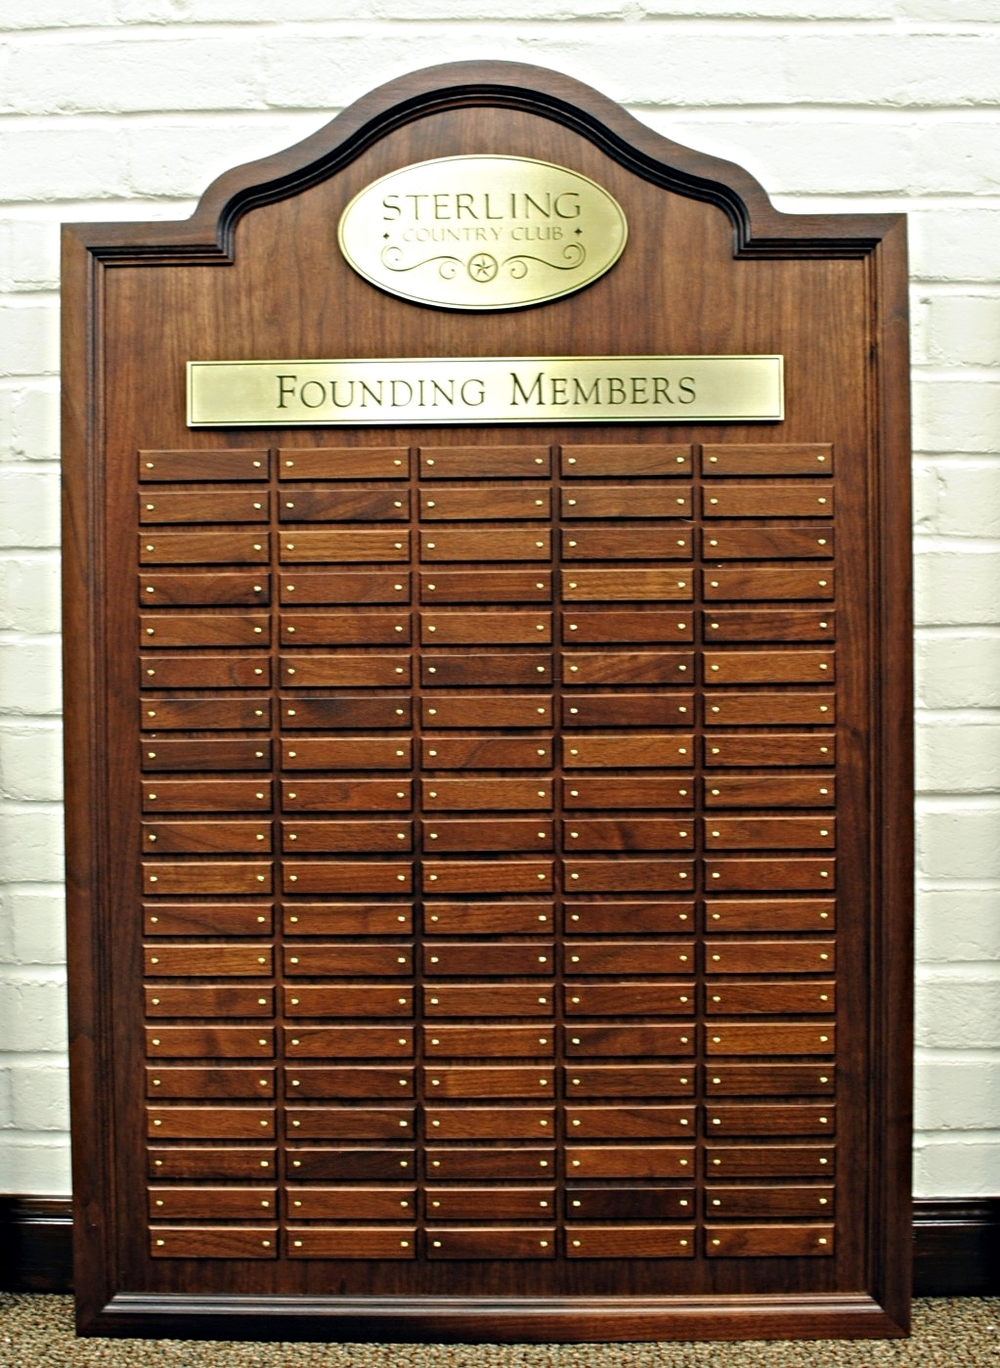 Founding Members Plaque